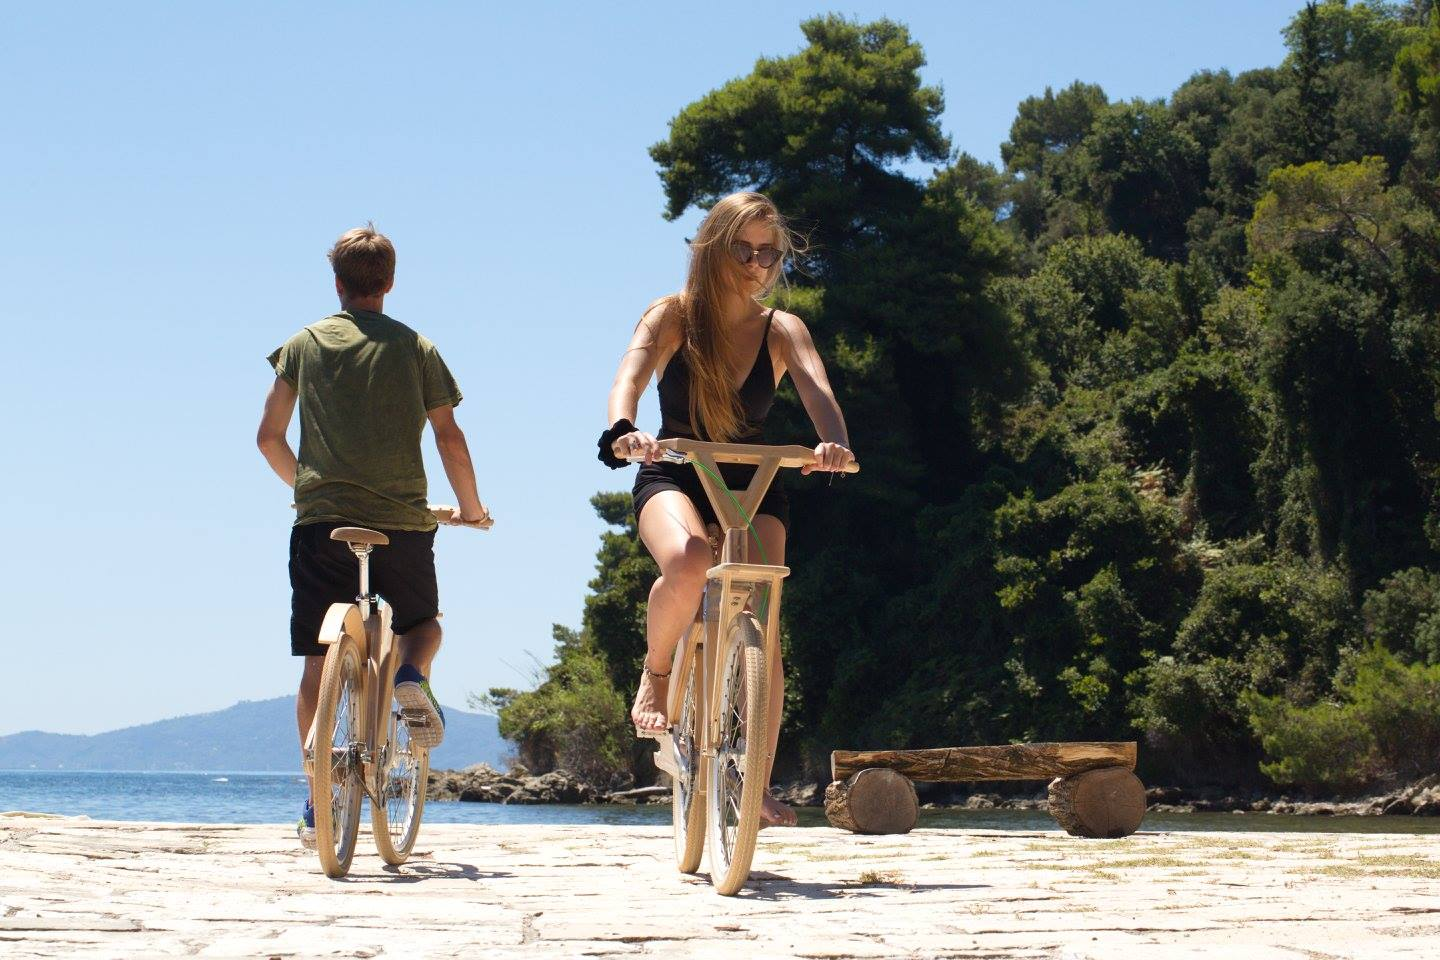 Ride the town of Corfu